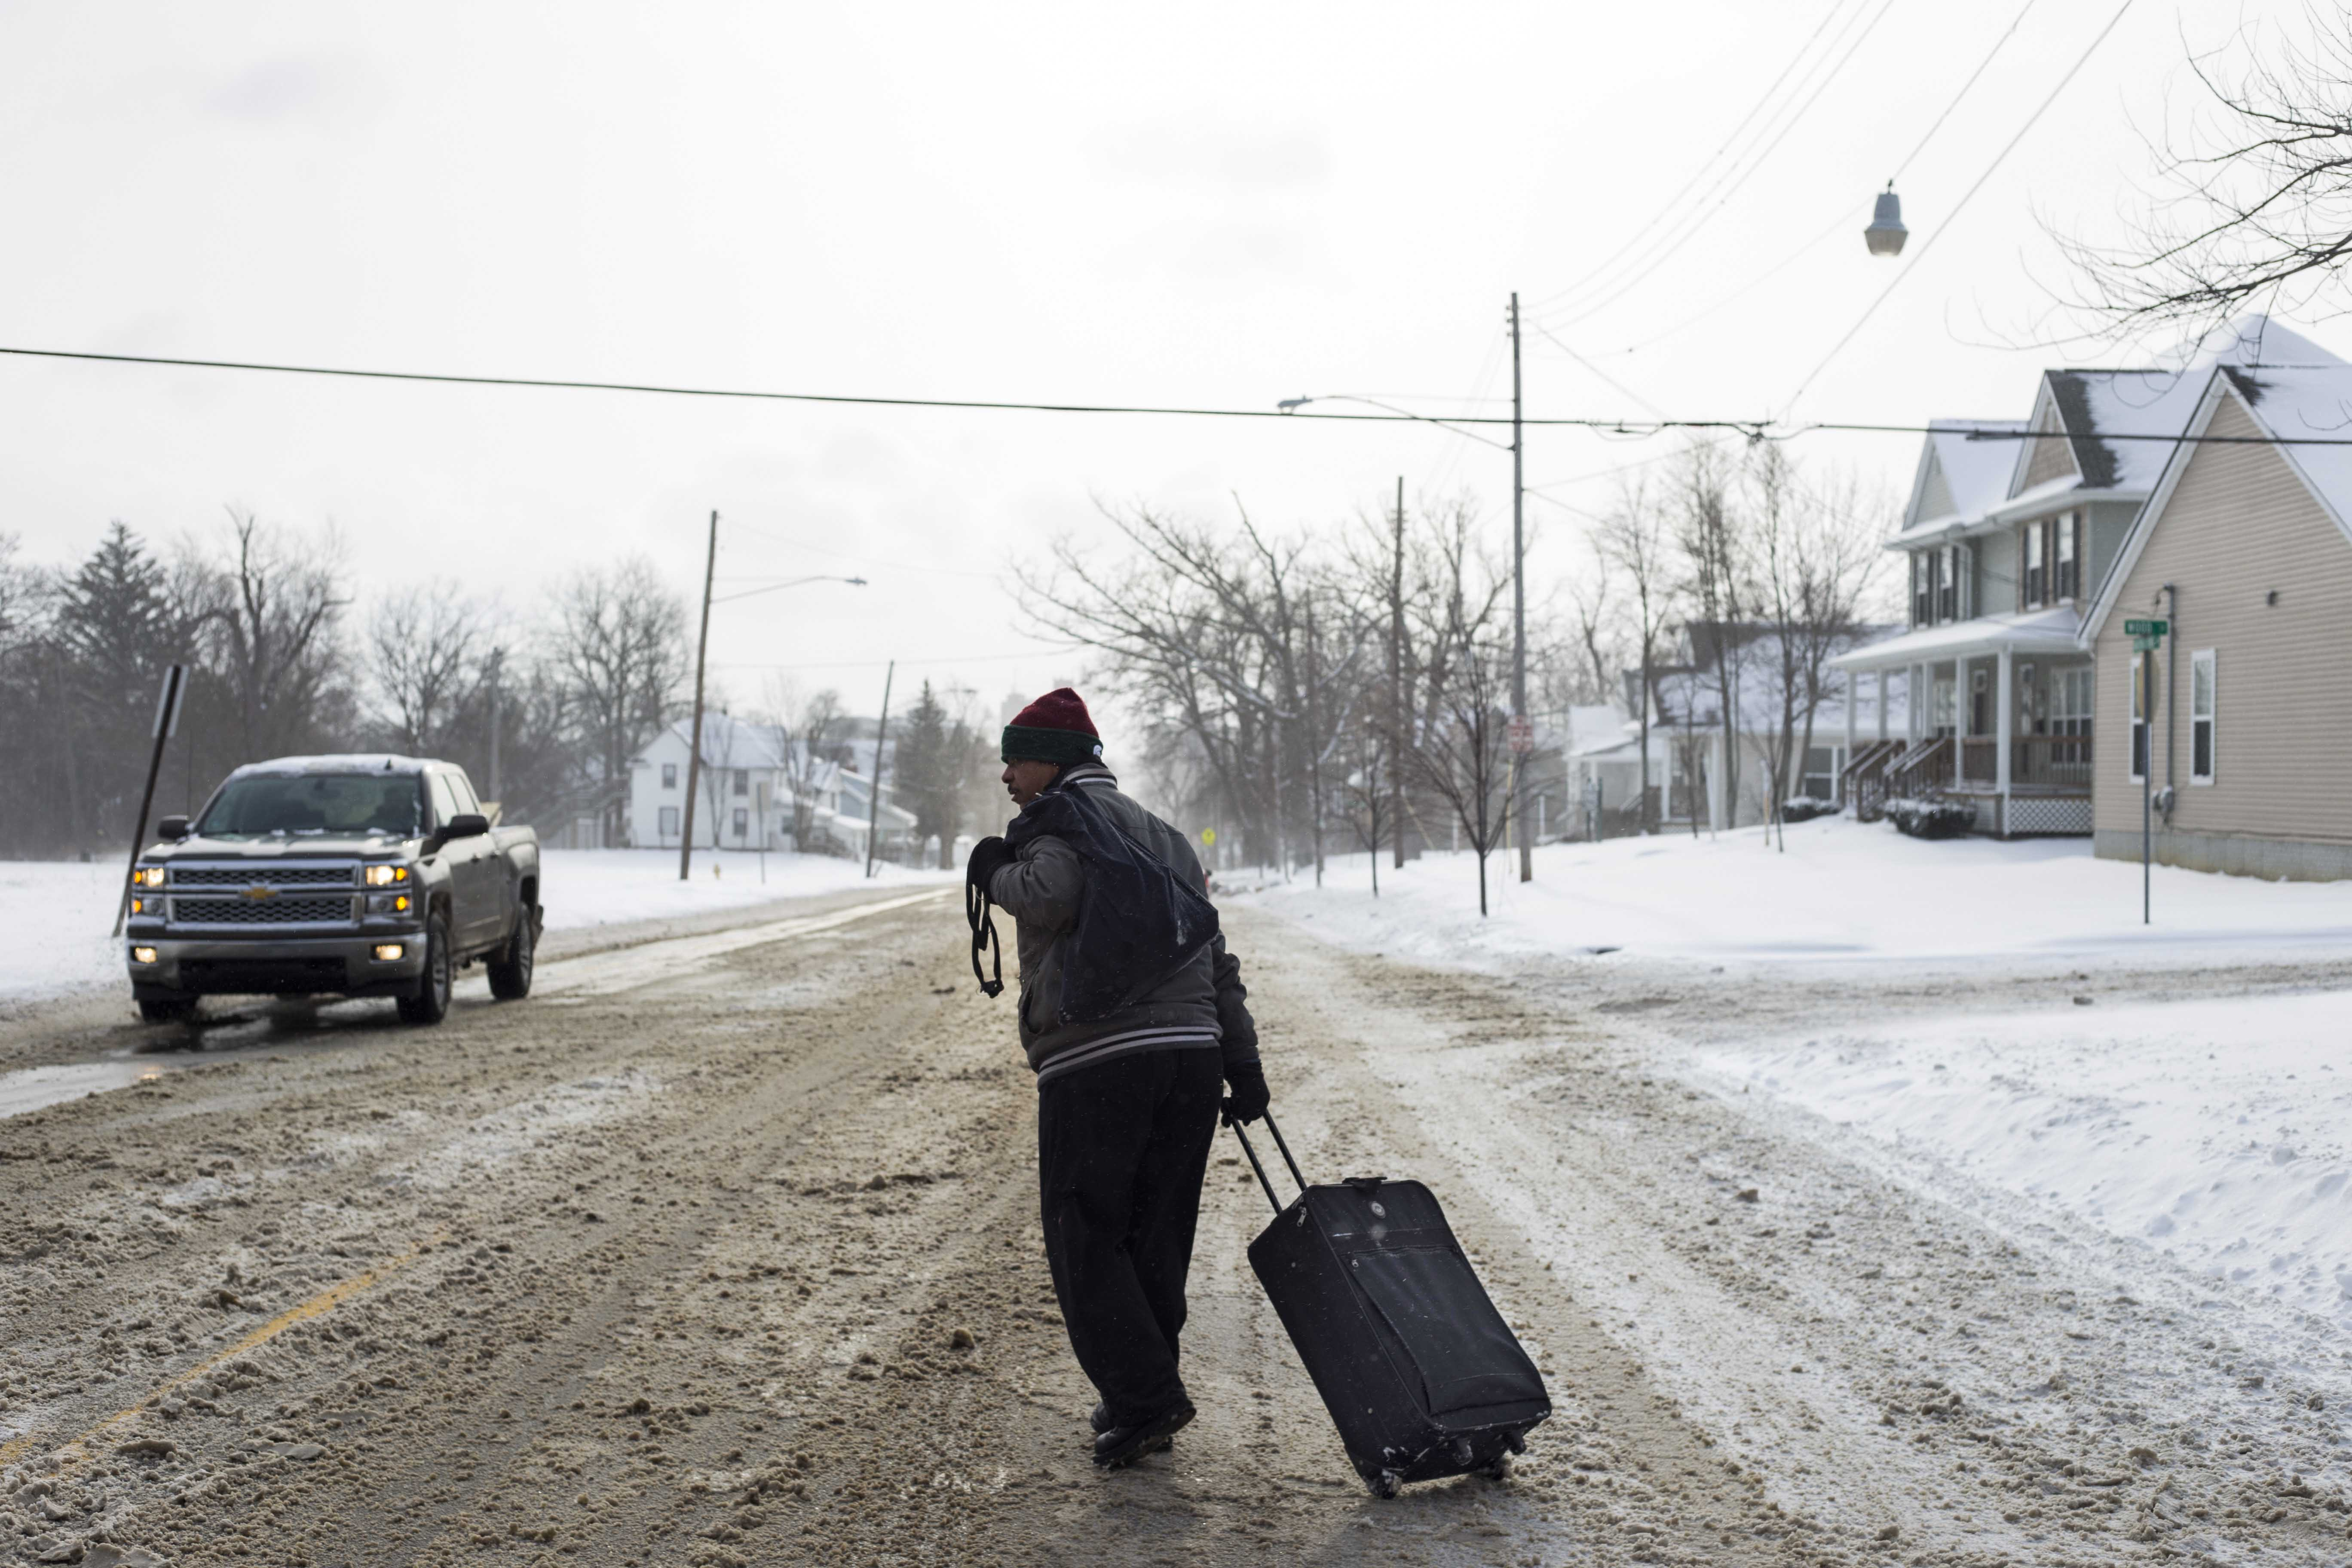 A man who gave his name as Chester braves below freezing temperatures to drag a suitcase full of bottled water from Firehouse #3, where water was being handed out to residents by American Red Cross workers, to catch a bus back to his family's home in Flint on January 12, 2016. Many resident's in Flint lack viable transit options which has left them resorting to the city's bus system to get heavy cases of bottled water. (Brittany Greeson/GroundTruth)